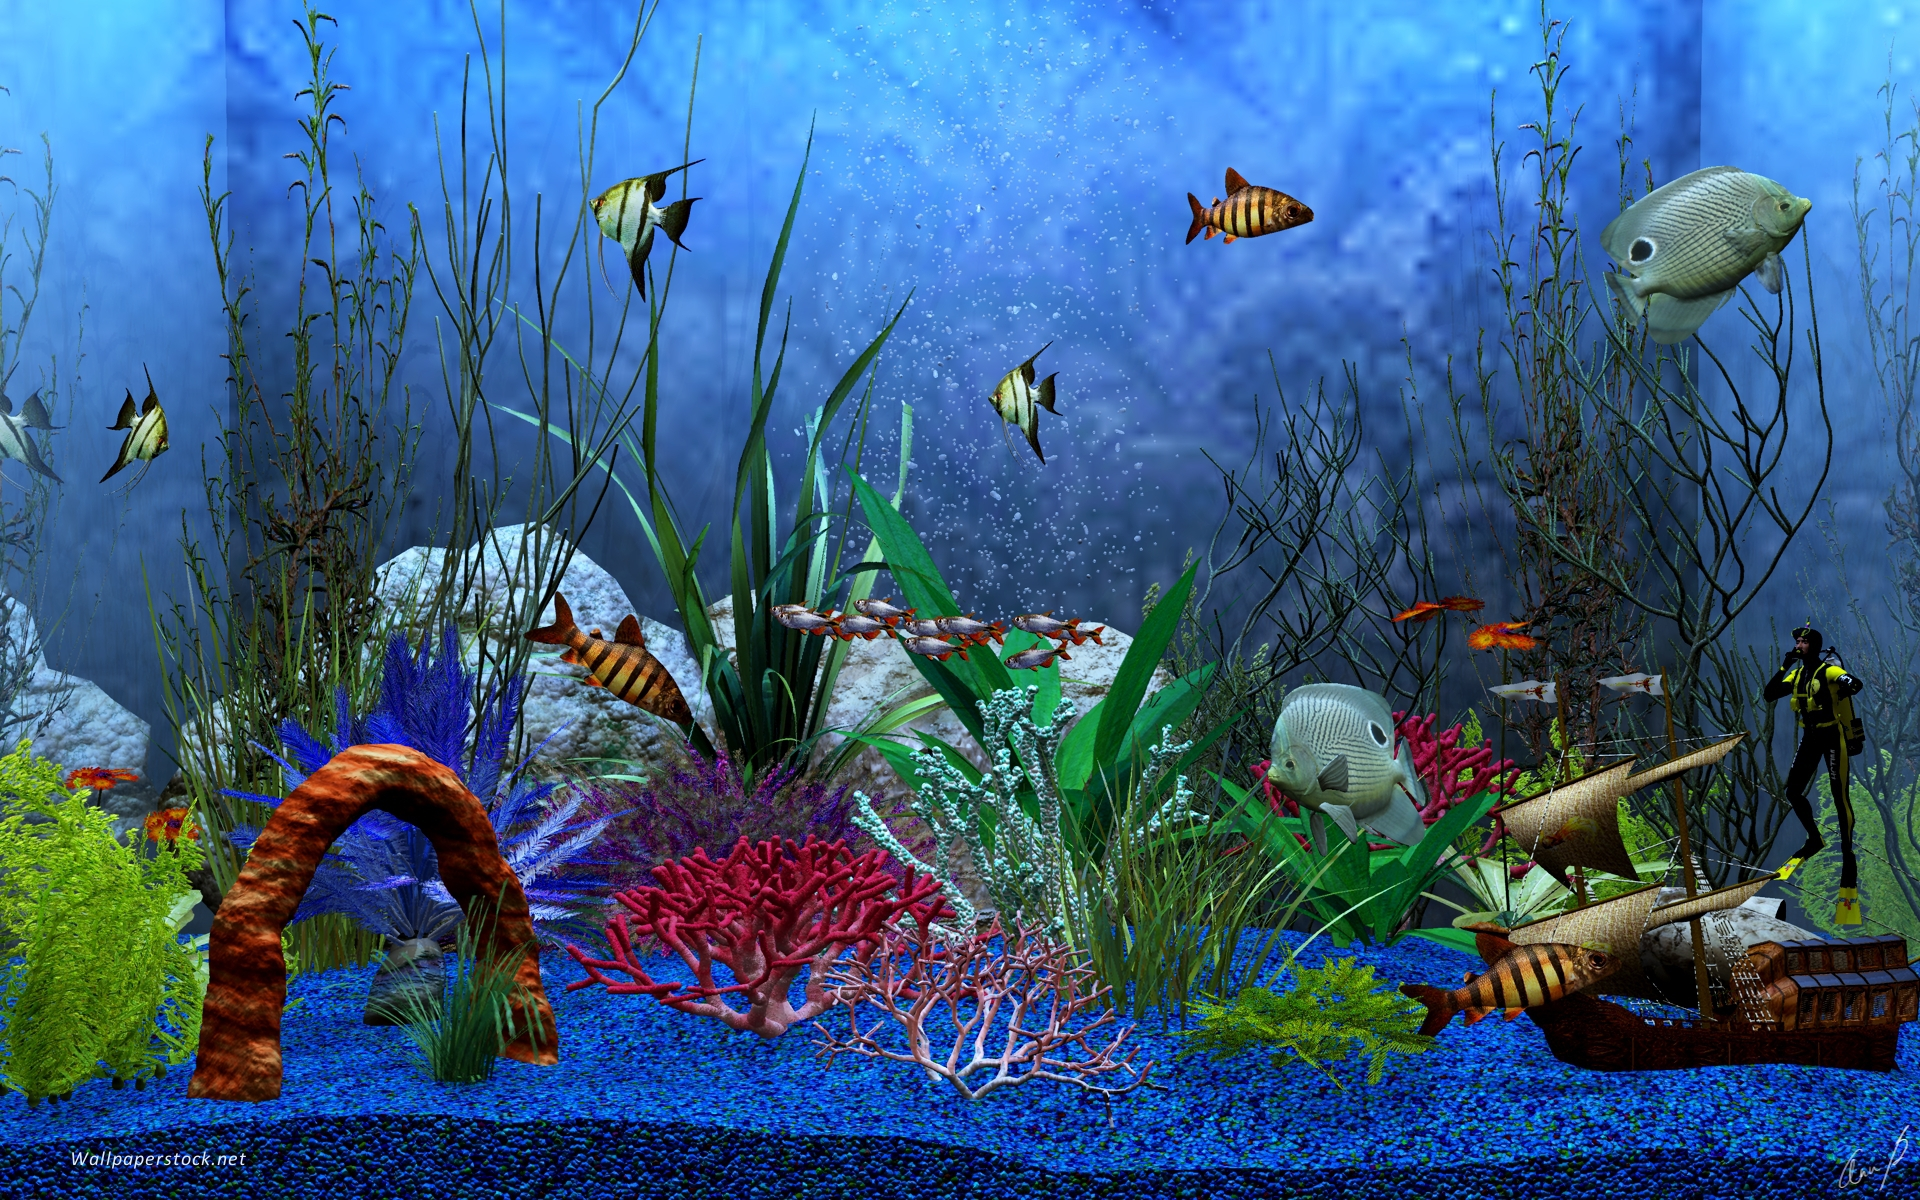 Koi Fish 3d Animated Wallpaper Aquarium View Wallpapers Aquarium View Stock Photos